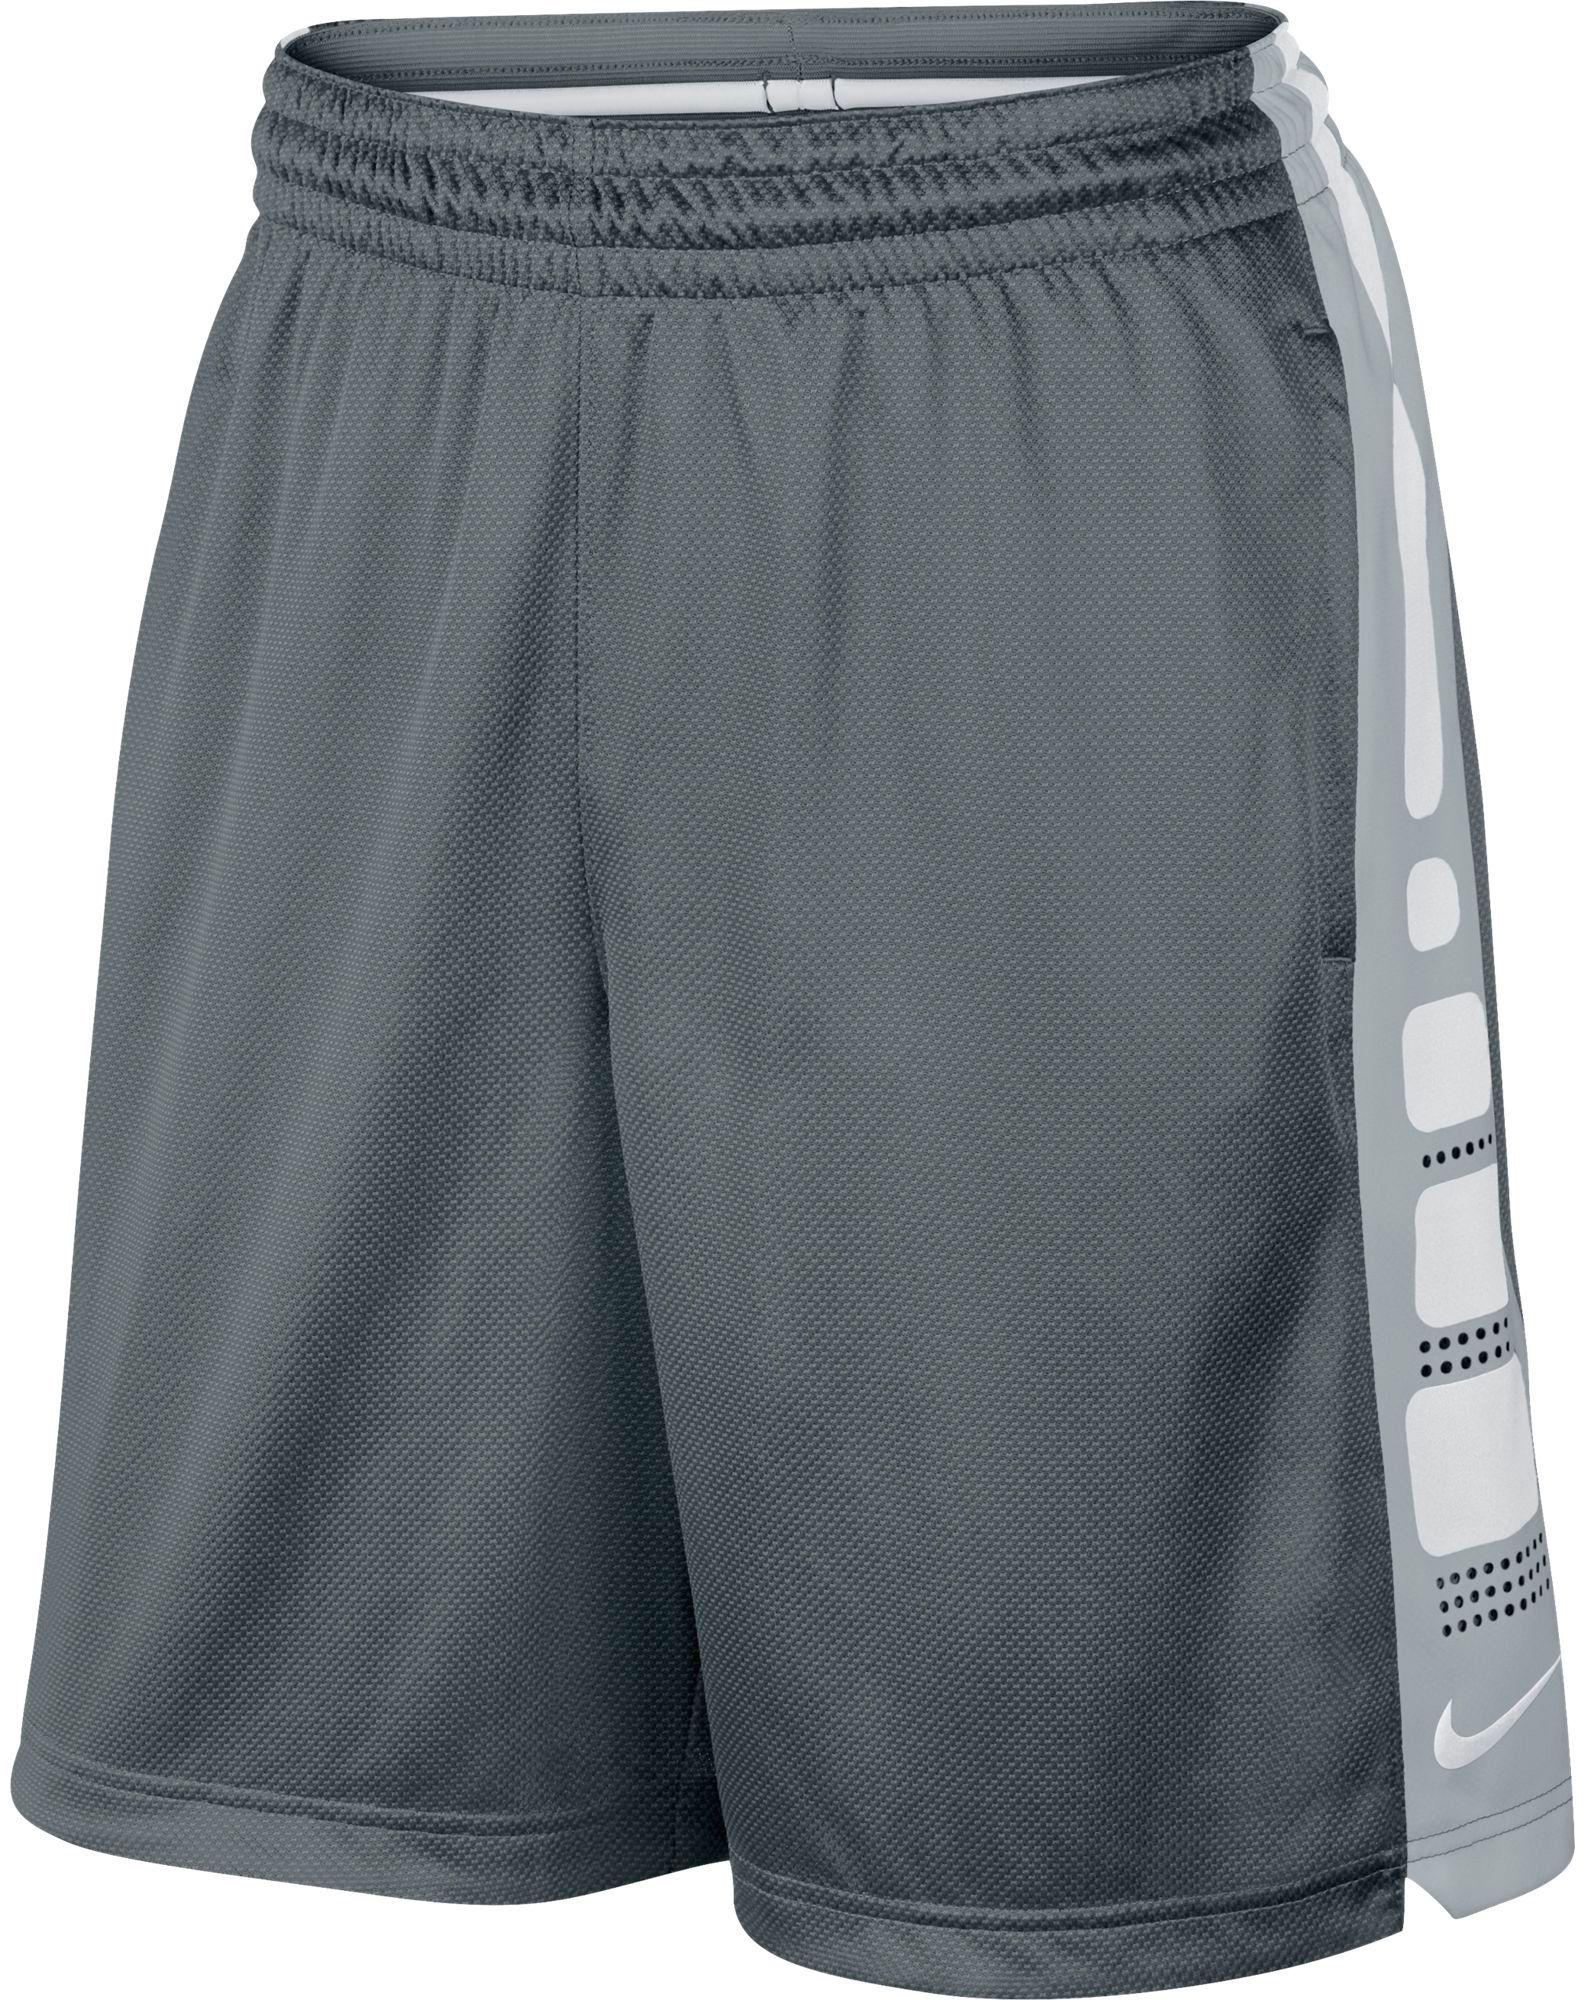 65c7d6761720 Lyst - Nike Elite Dri-fit Basketball Shorts in Gray for Men